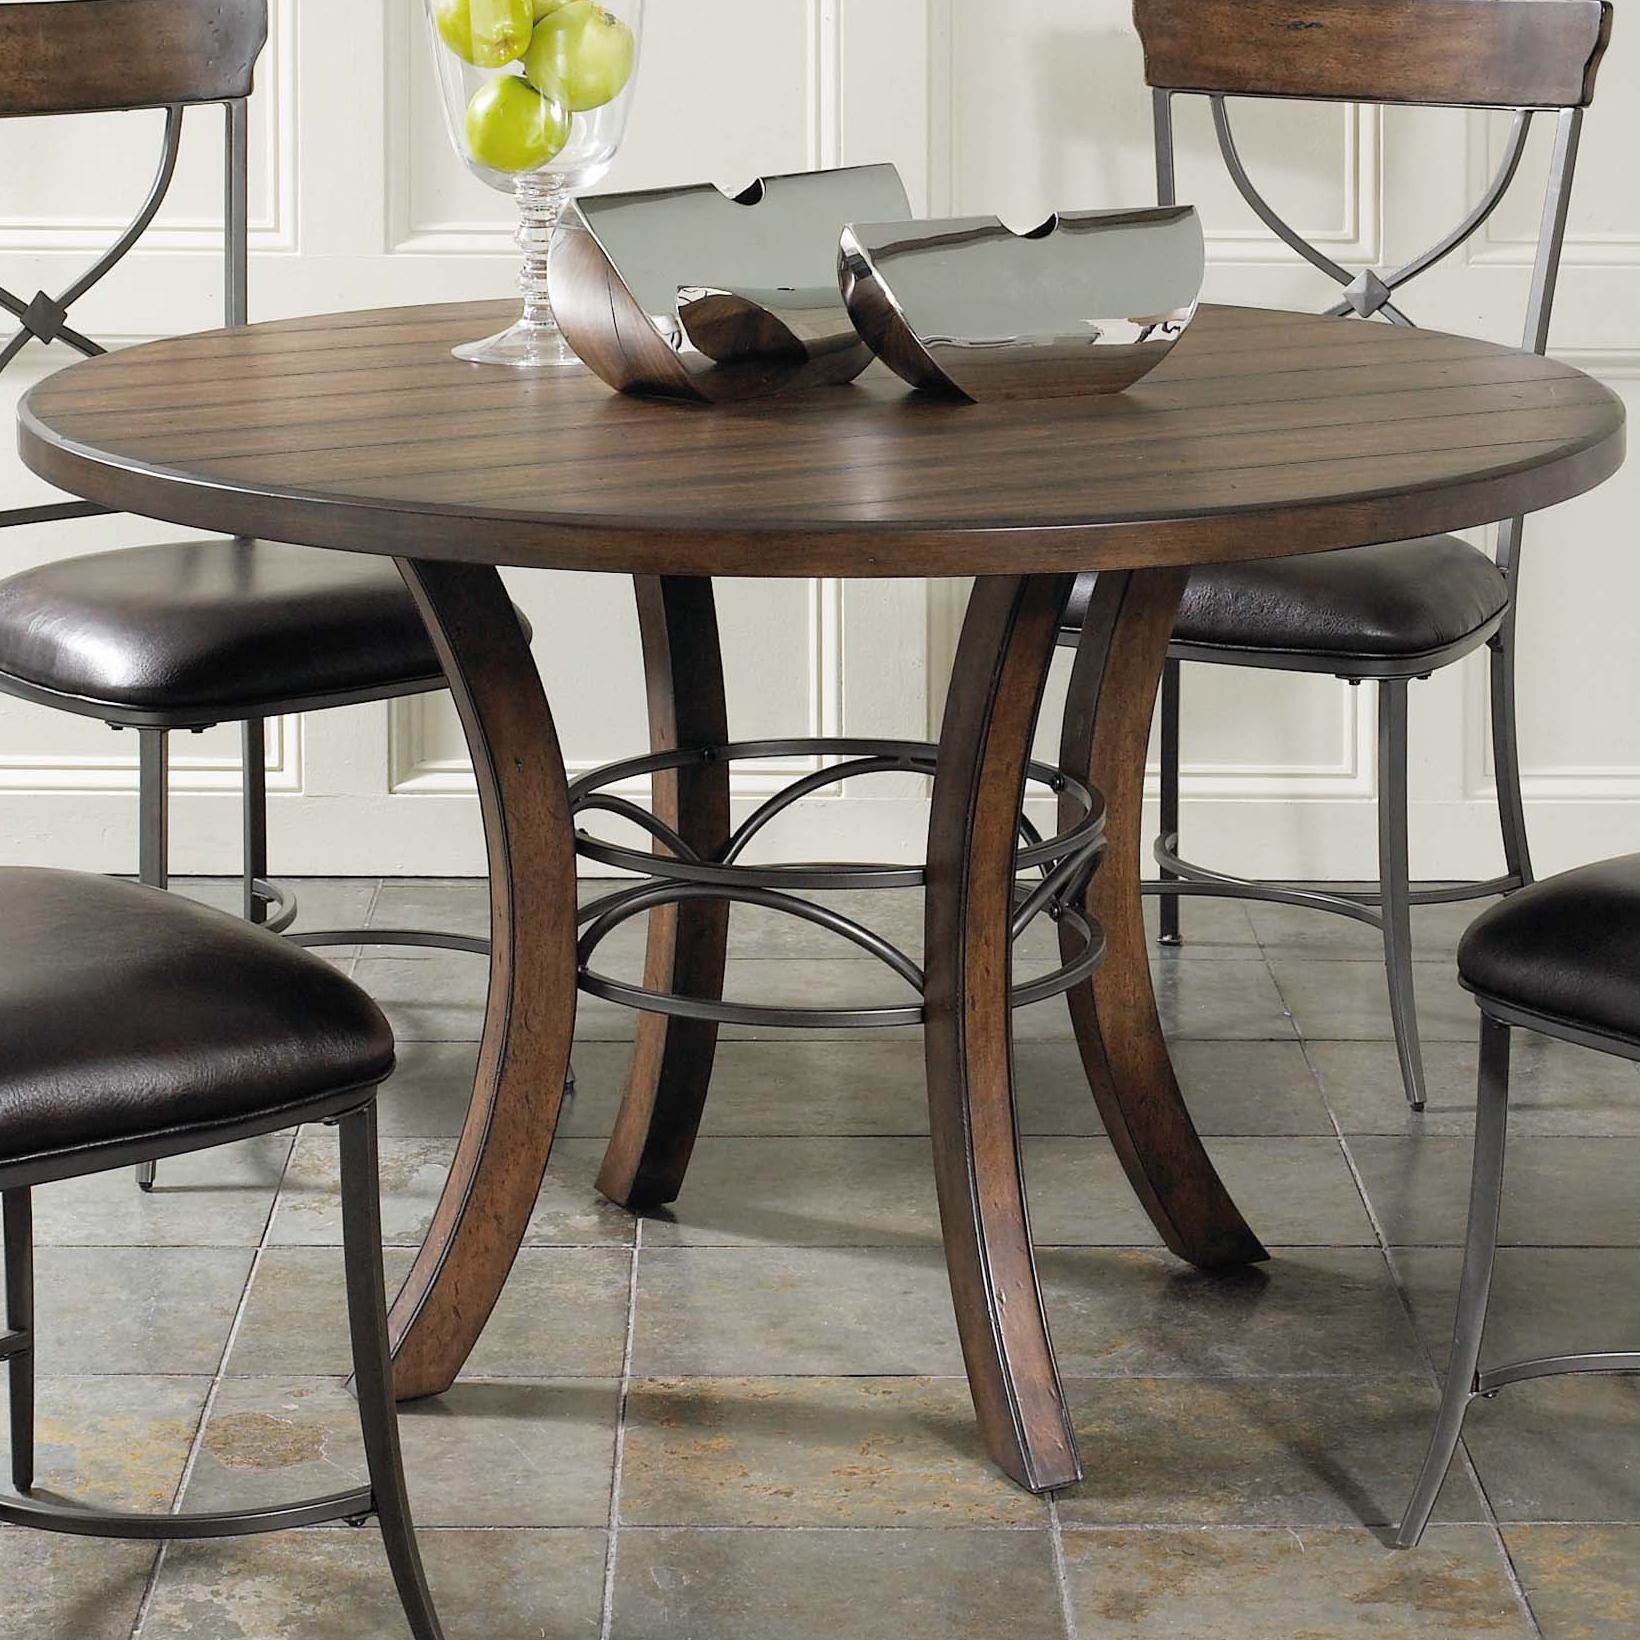 Amazing Wood And Metal Round Dining Table Part - 2: Round Wood Dining Table With Metal Acent Base